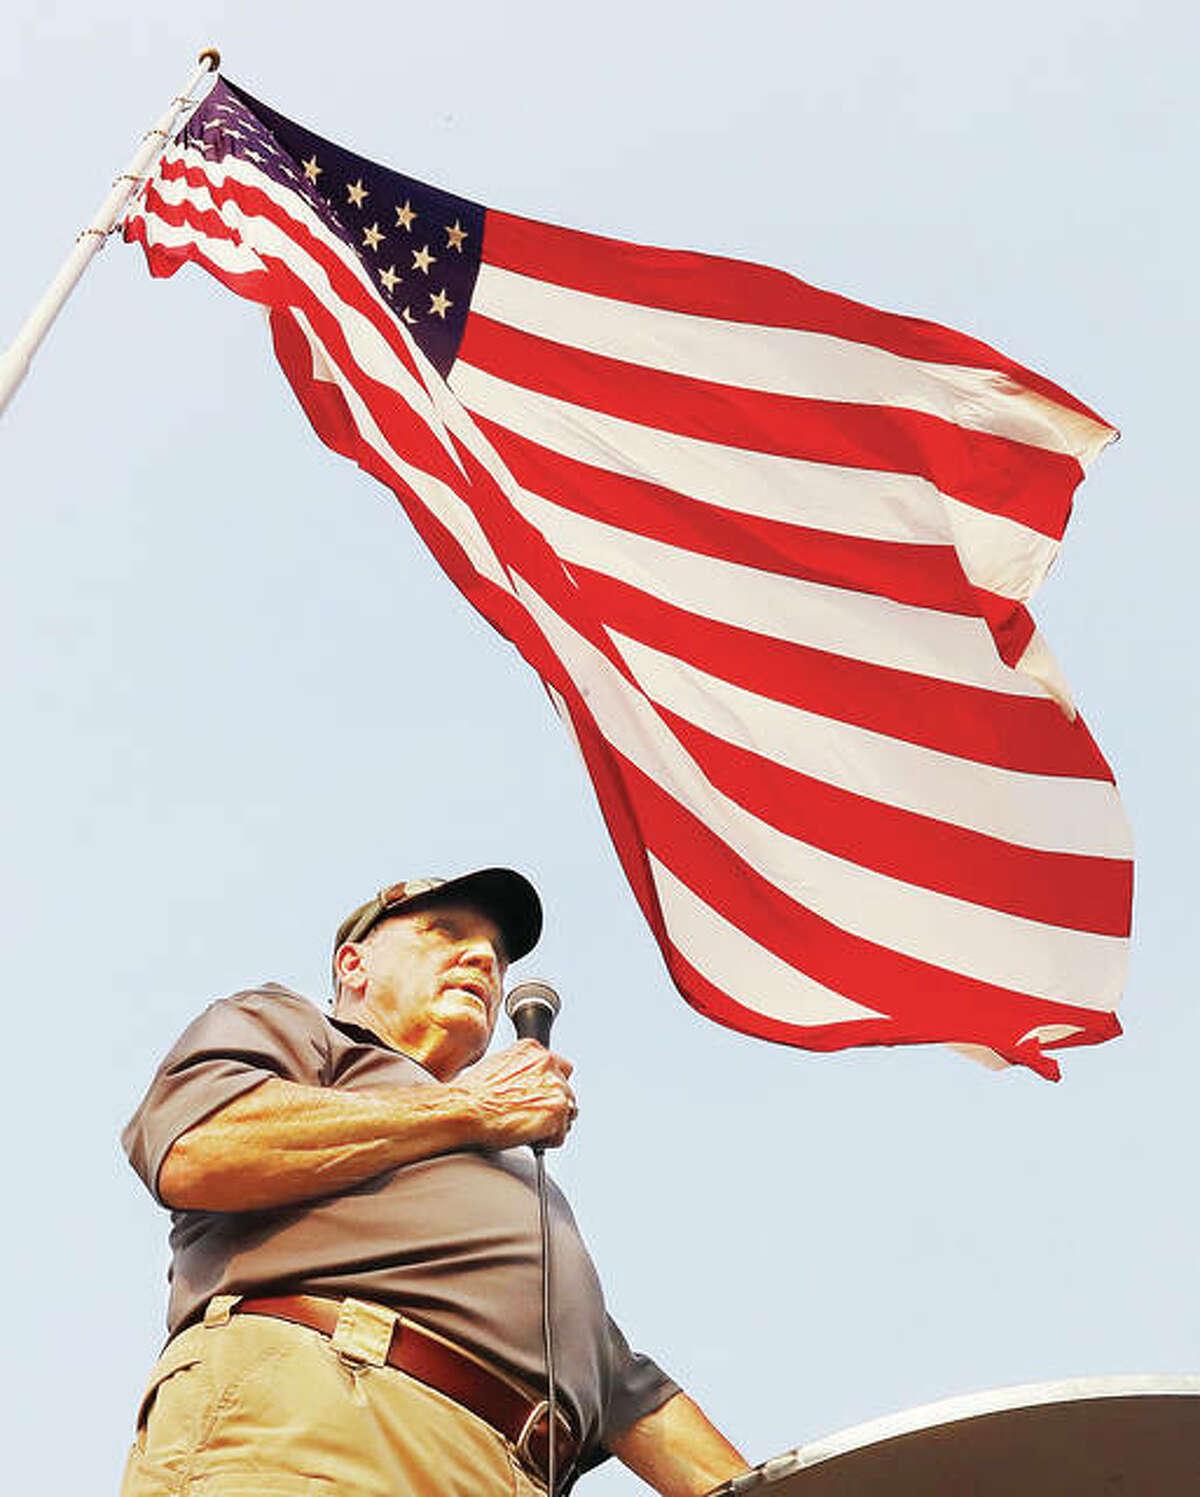 Terry Day, chairman of the veterans committee in Grafton, speaks to a crowd of about 100 people who gathered near the lage American flag on the riverfront in Grafton Saturday.